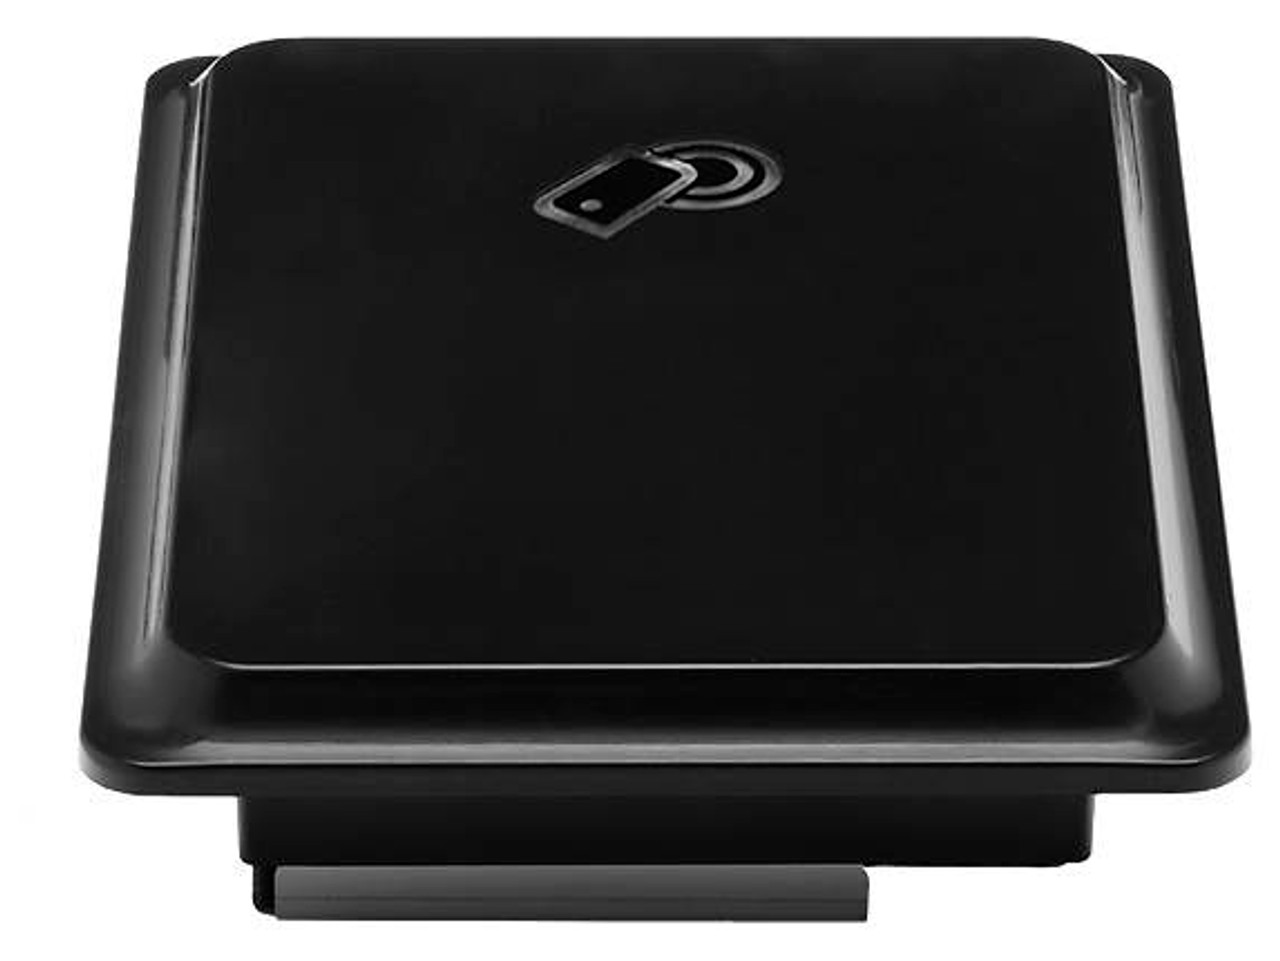 Image for HP J8029A Jetdirect 2800w NFC/Wireless Direct Accessory for HP Printers CX Computer Superstore